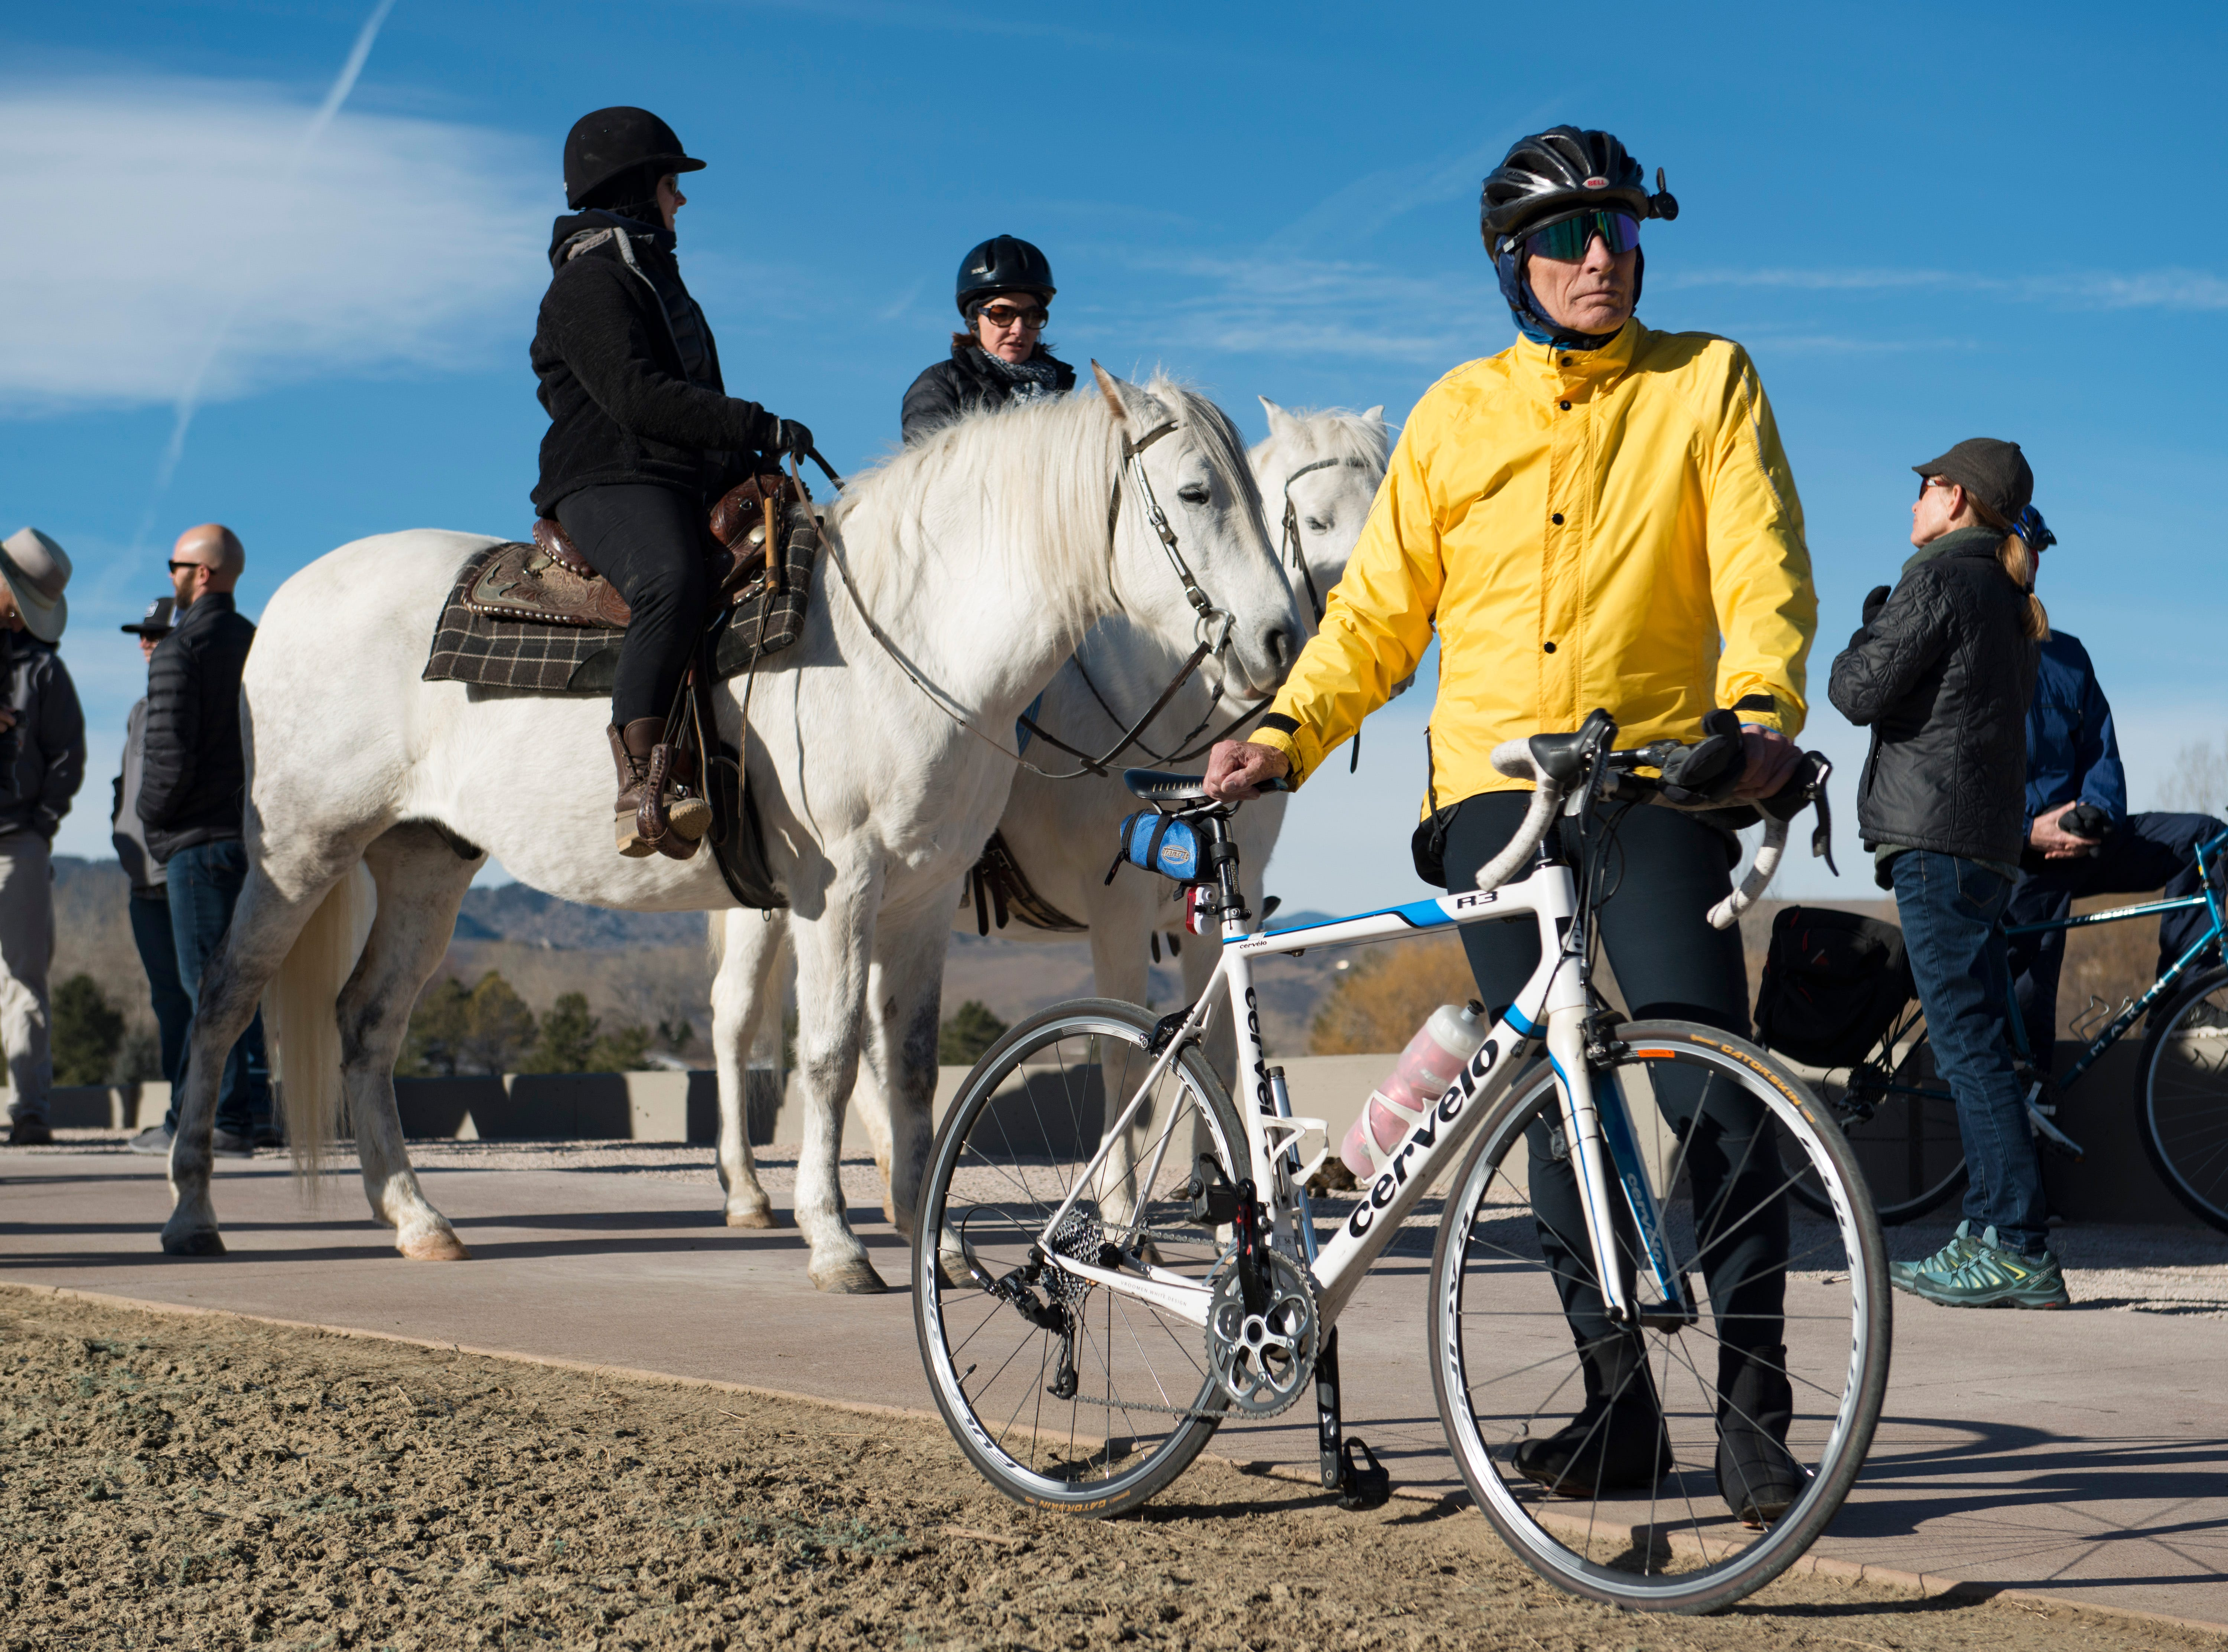 Rudy Zitty stands with his bike as he attends a ribbon-cutting for the new 70-foot-long Fossil Creek Trail pedestrian tunnel in south Fort Collins on Monday, December 10, 2018. The new 1.7 mile section of trail runs under the BNSF railway to connect College Avenue and Shields Street.